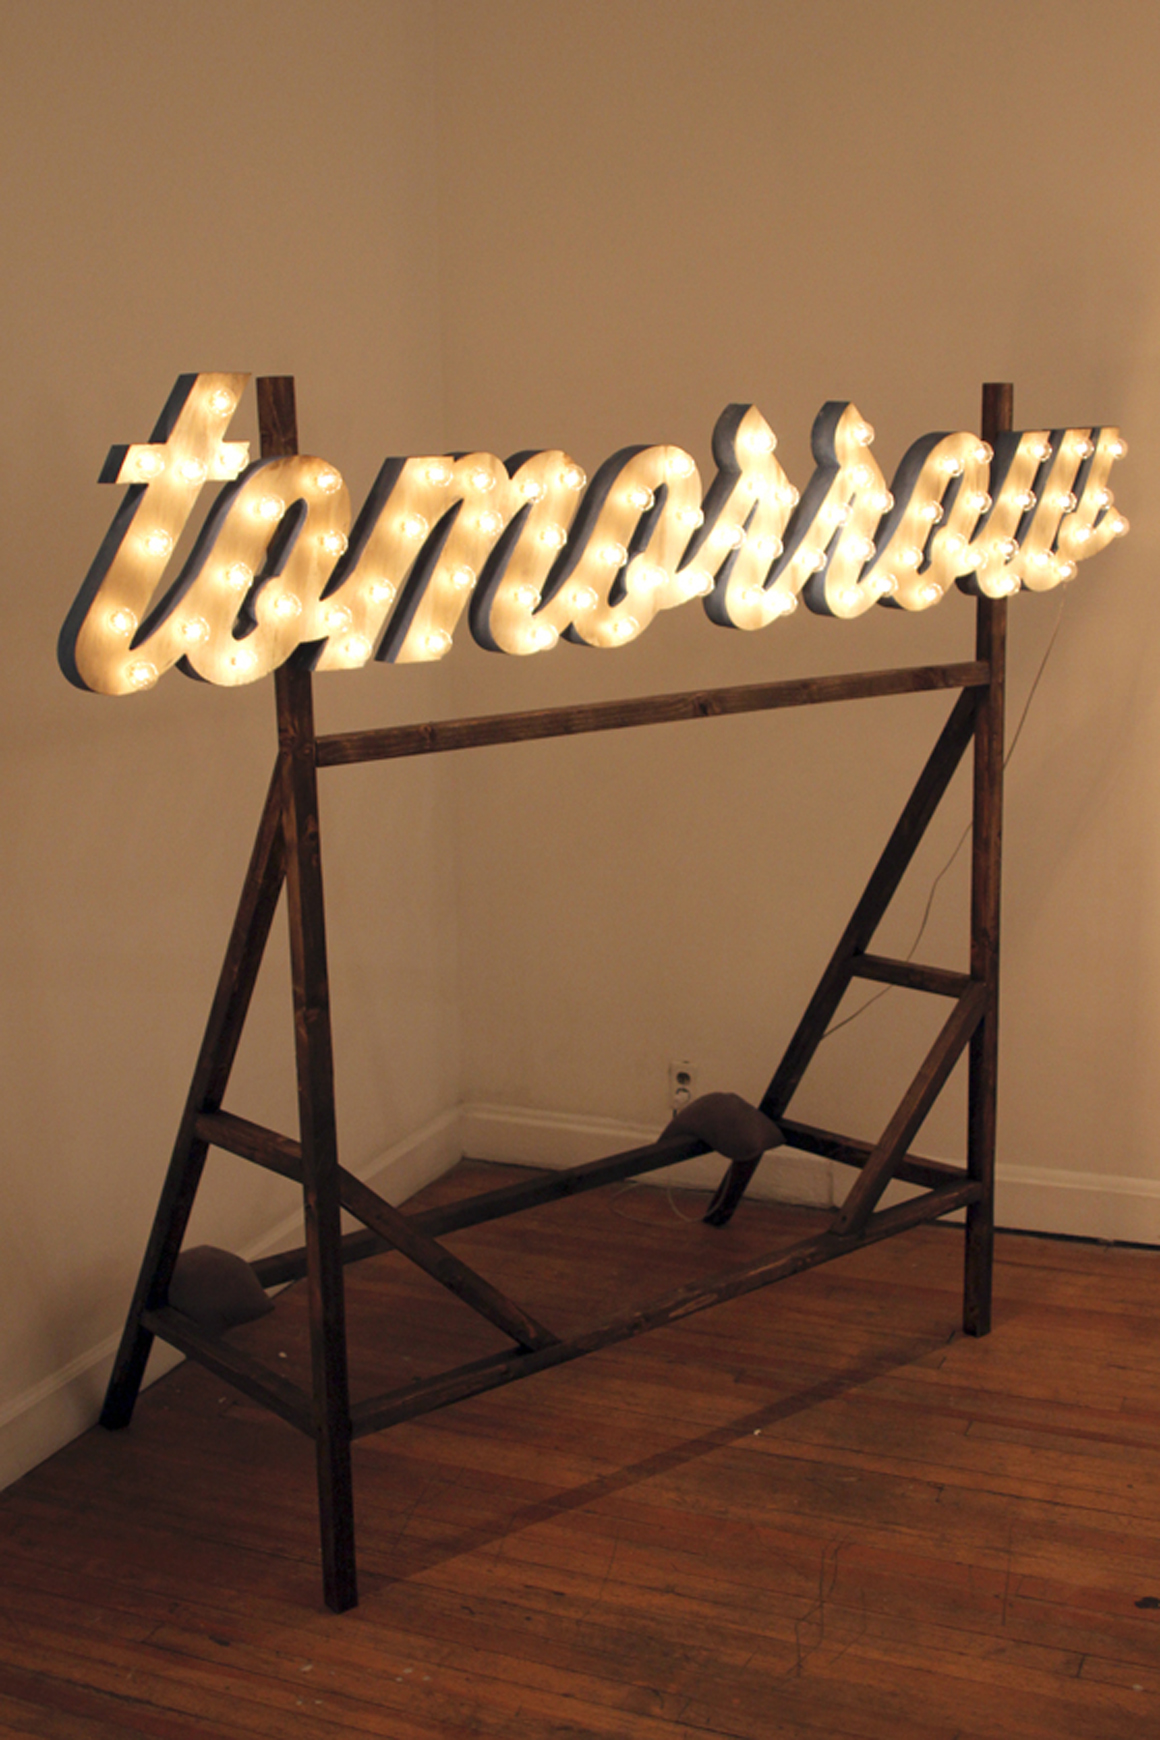 <p><em>Tomorrow</em><span class='media'>MDF, lights, wood scaffolding</span>18 x 83 x 32 in (45.7 x 210.8 x 81.3 cm) Letters Only<br>2013<br><a class='inquire' href='mailto:info@gildargallery.com?subject=Artwork Inquiry REVE0008&body=I am interested in finding out more about Tomorrow by Ryan Everson'>Inquire</a></p>